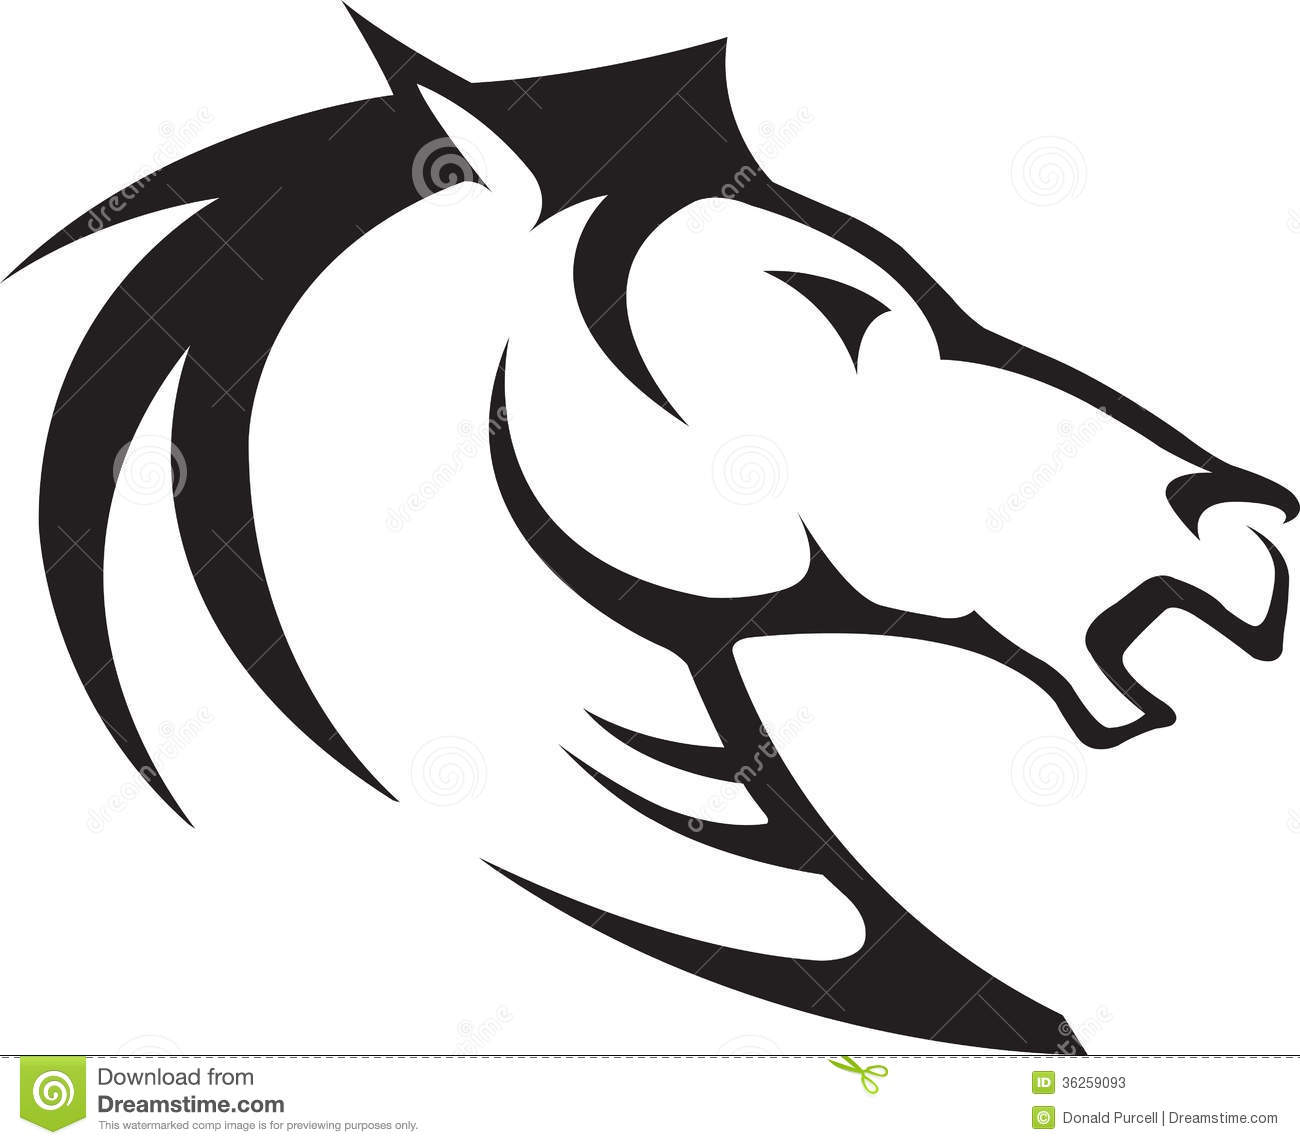 high resolution vector file